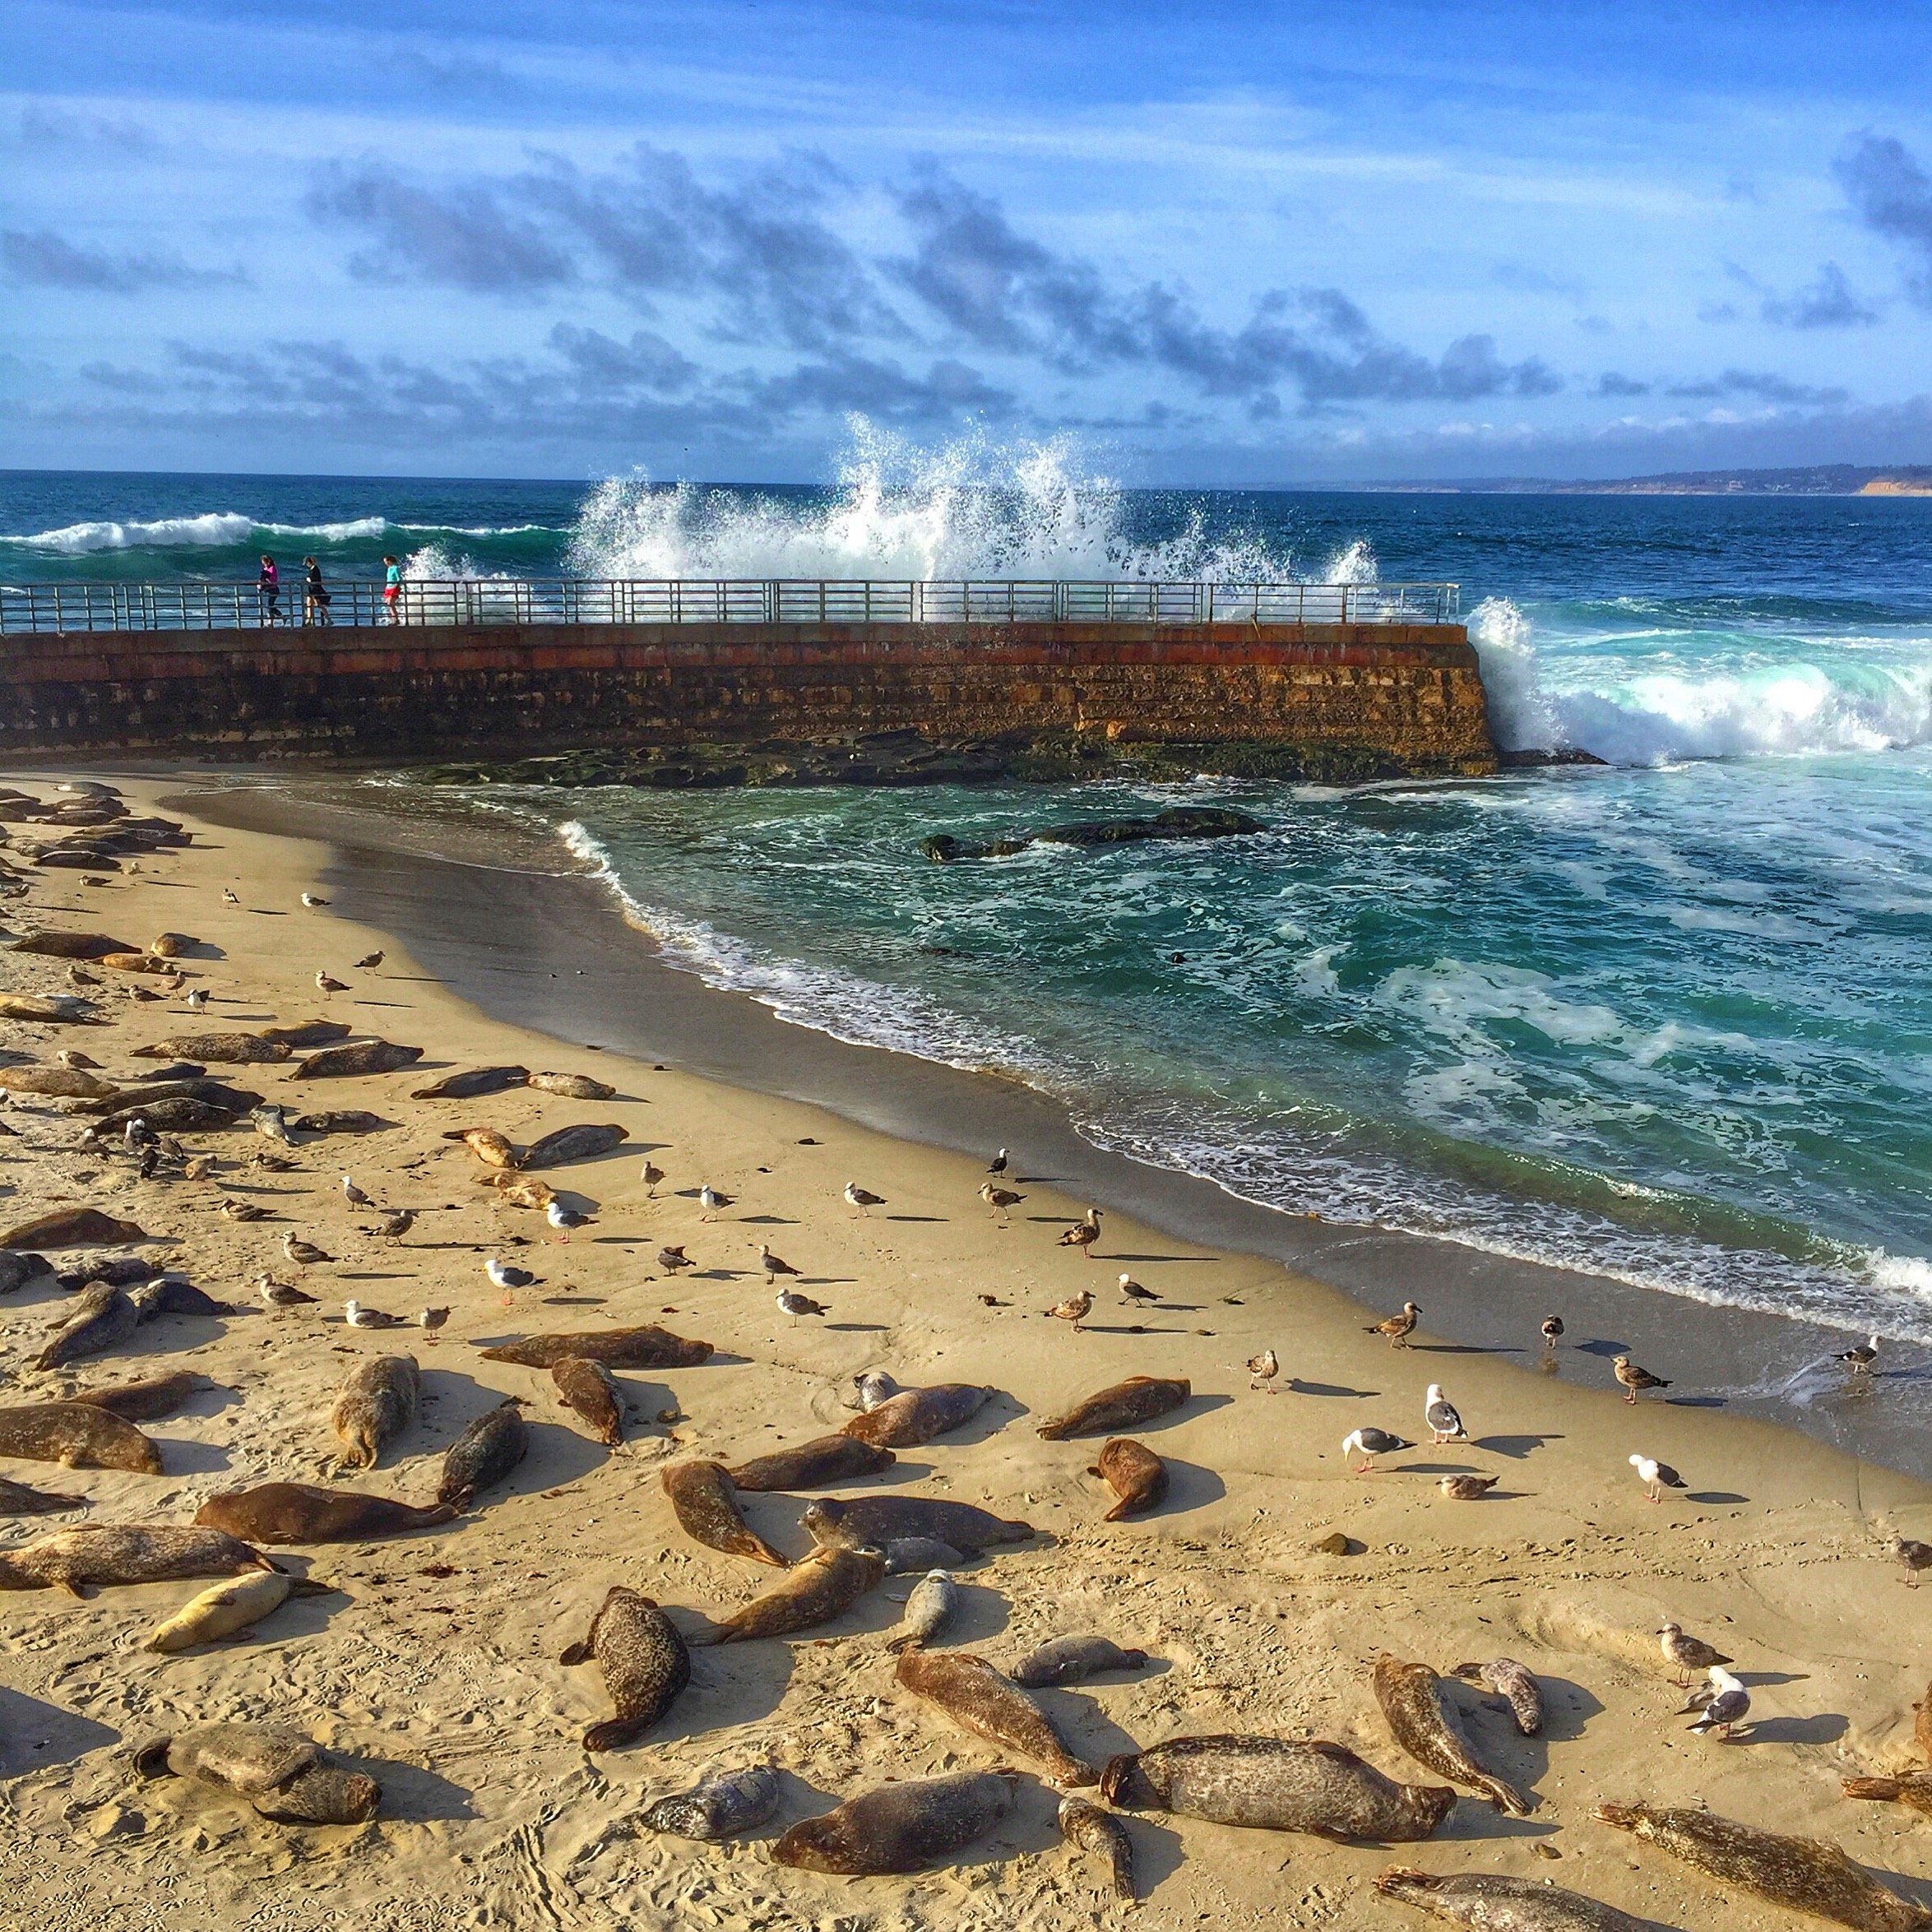 A wave crashes on the Children's Pool sea wall while seals sleep on the sand.